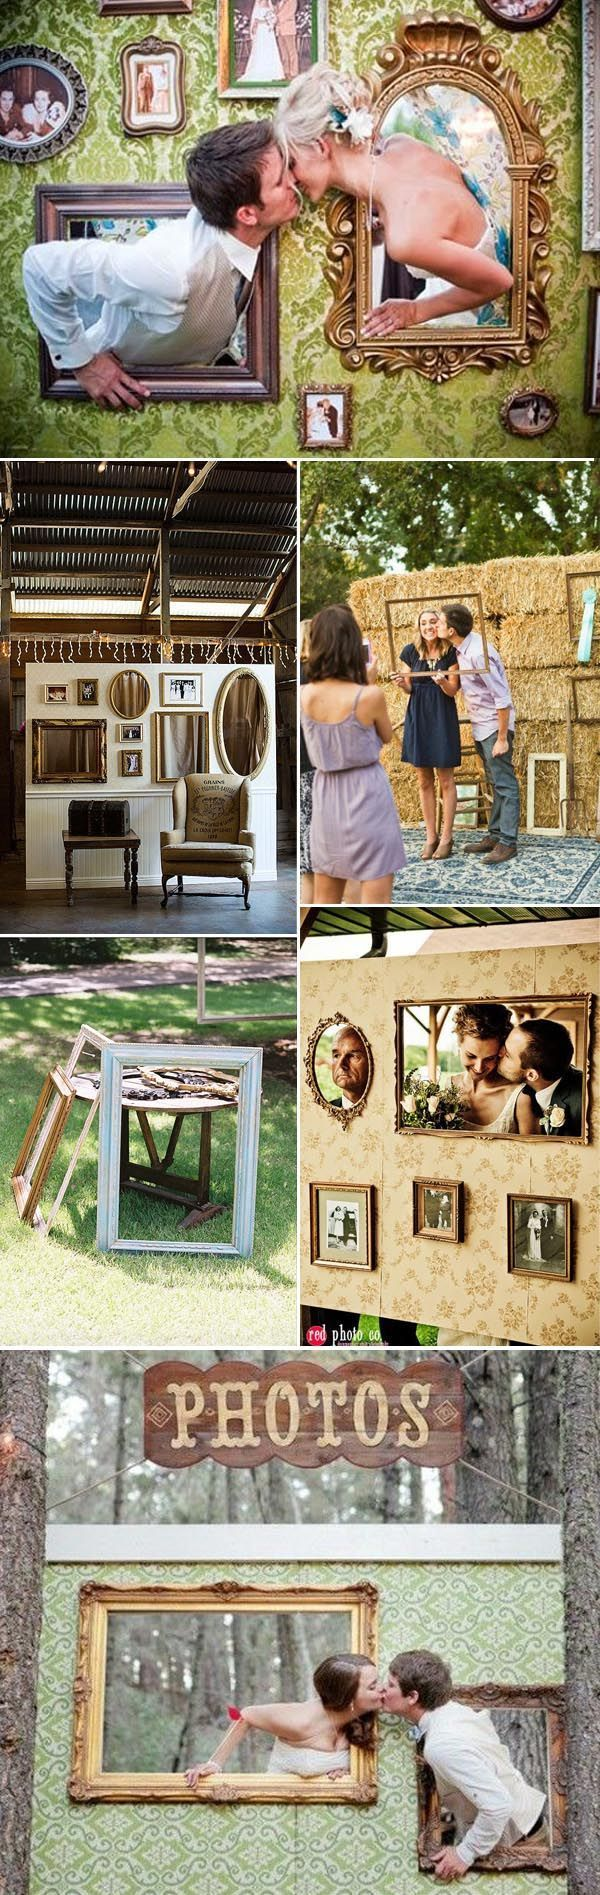 wedding ideas other than photo booth 25 wedding photo booths ideas on photo 28276